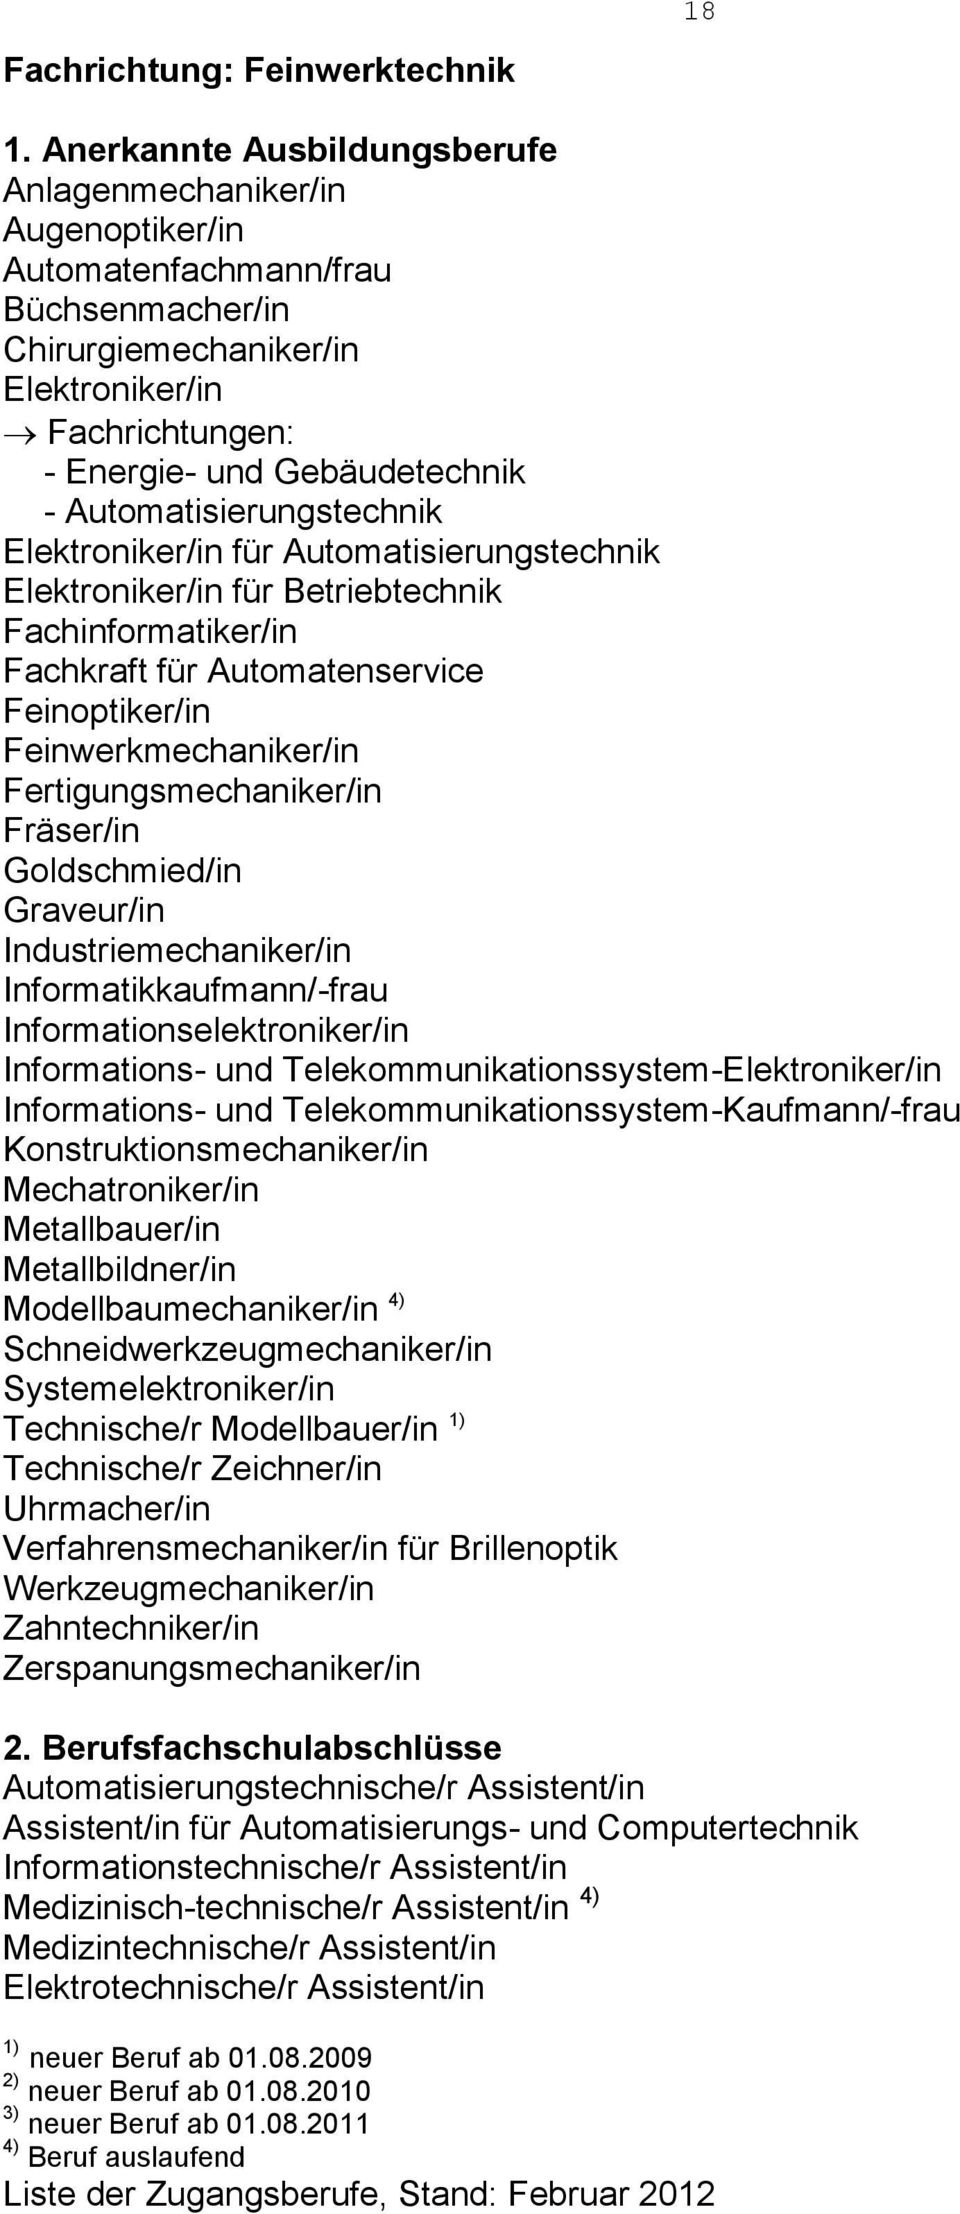 Fertigungsmechaniker/in Fräser/in Goldschmied/in Graveur/in Industriemechaniker/in Informatikkaufmann/-frau Informationselektroniker/in Informations- und Telekommunikationssystem-Elektroniker/in